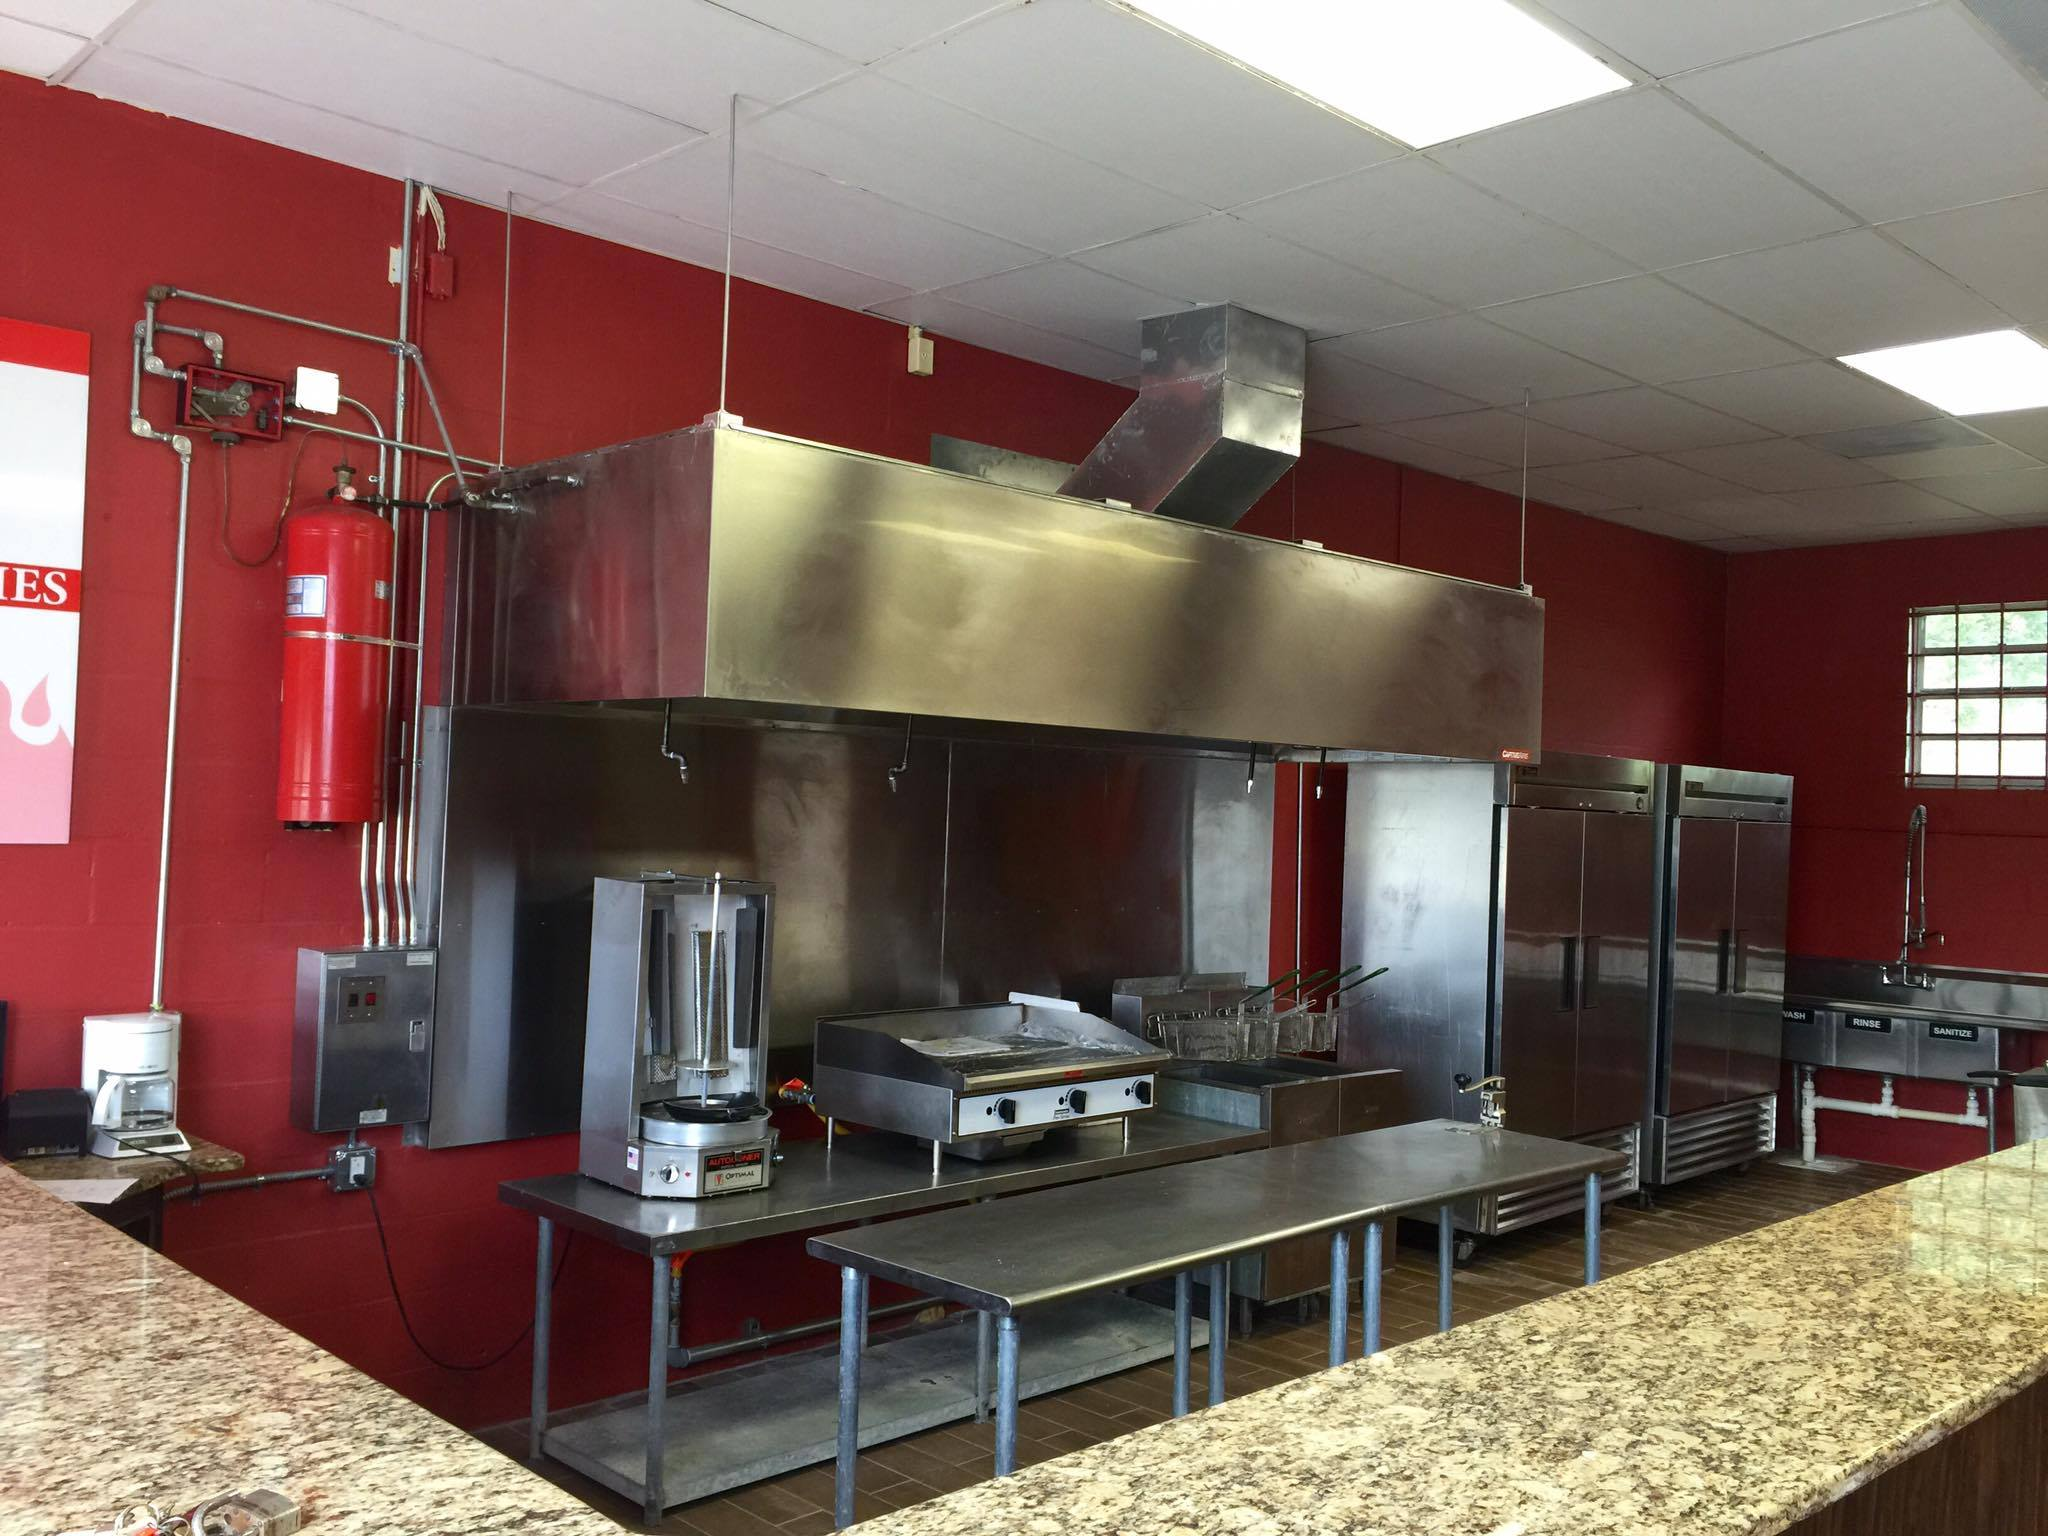 For Sale By Owner Florida >> Fully Equipped Restaurant - Amir Houses | Central Florida Lease with Option To Buy Houses ...